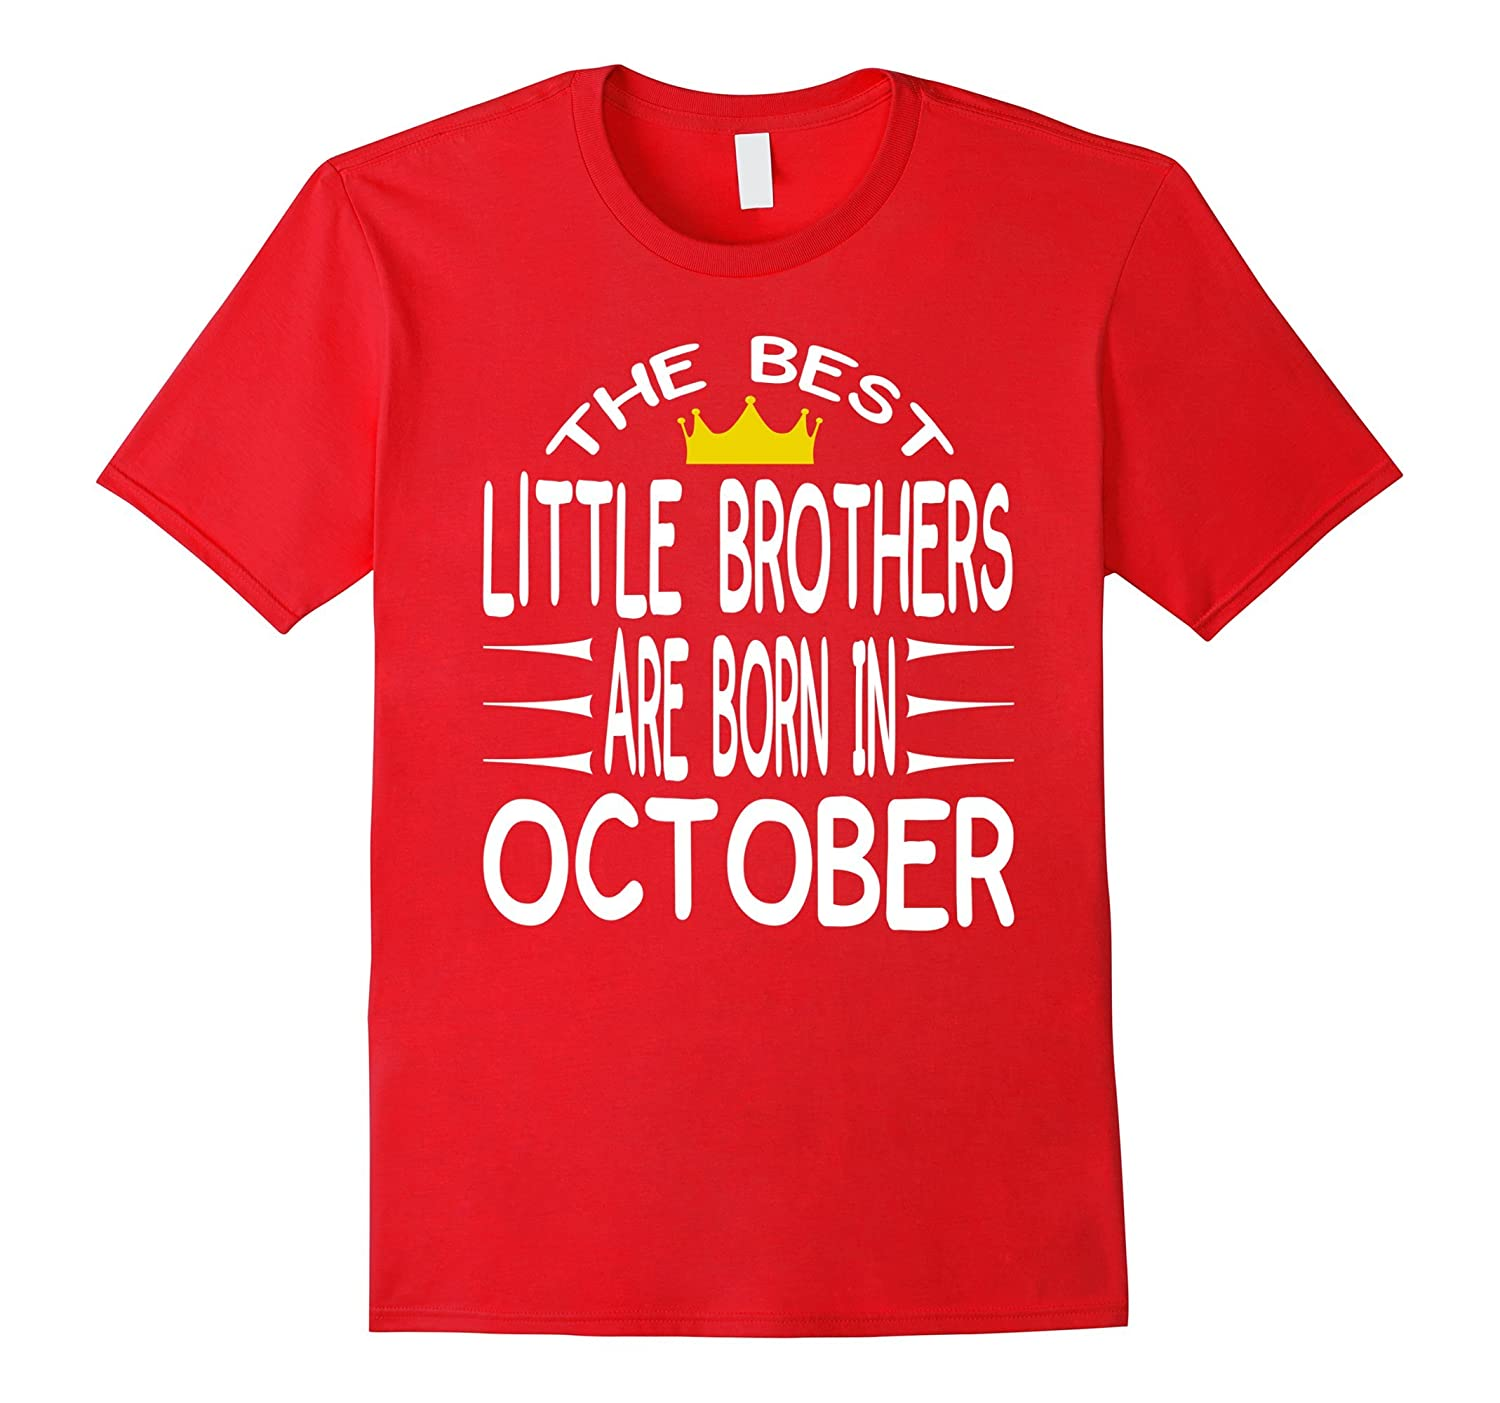 Birthday Tshirt For Little Brothers Born In October-T-Shirt